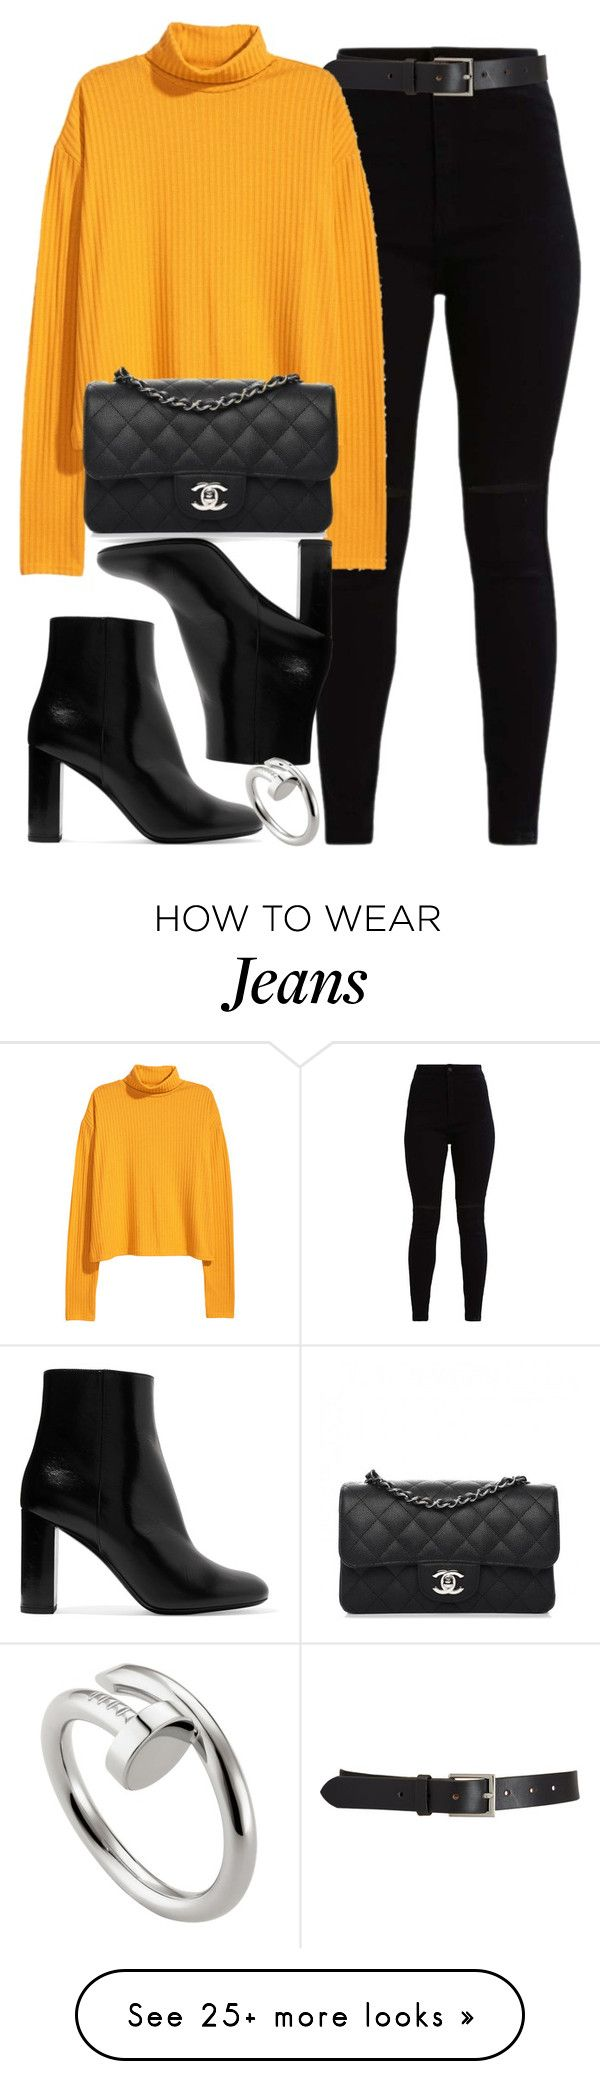 """Turtleneck"" by vany-alvarado on Polyvore featuring Barneys New York, Chanel, Yves Saint Laurent and Cartier"